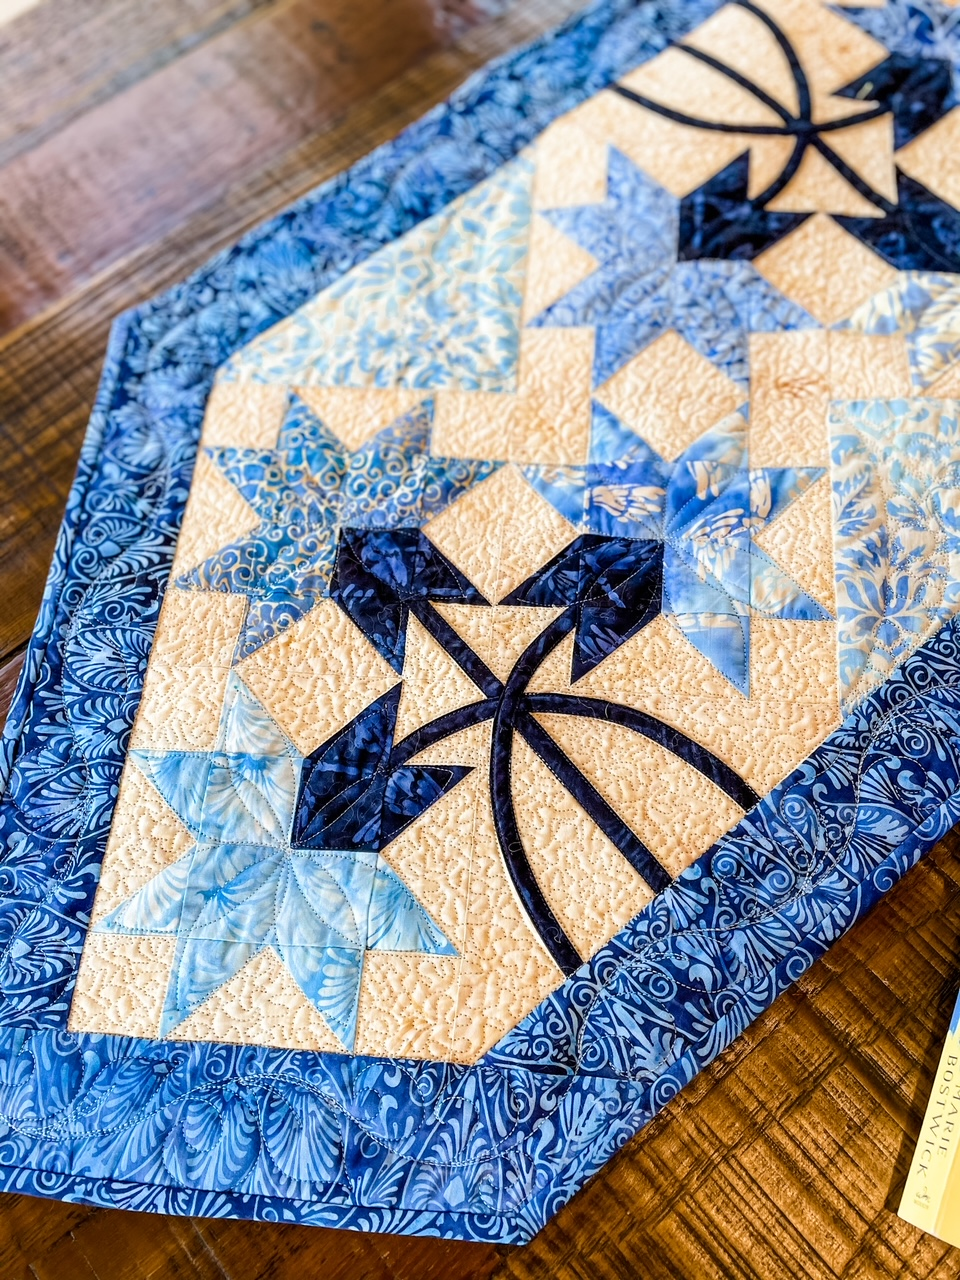 A close up of the table runner.